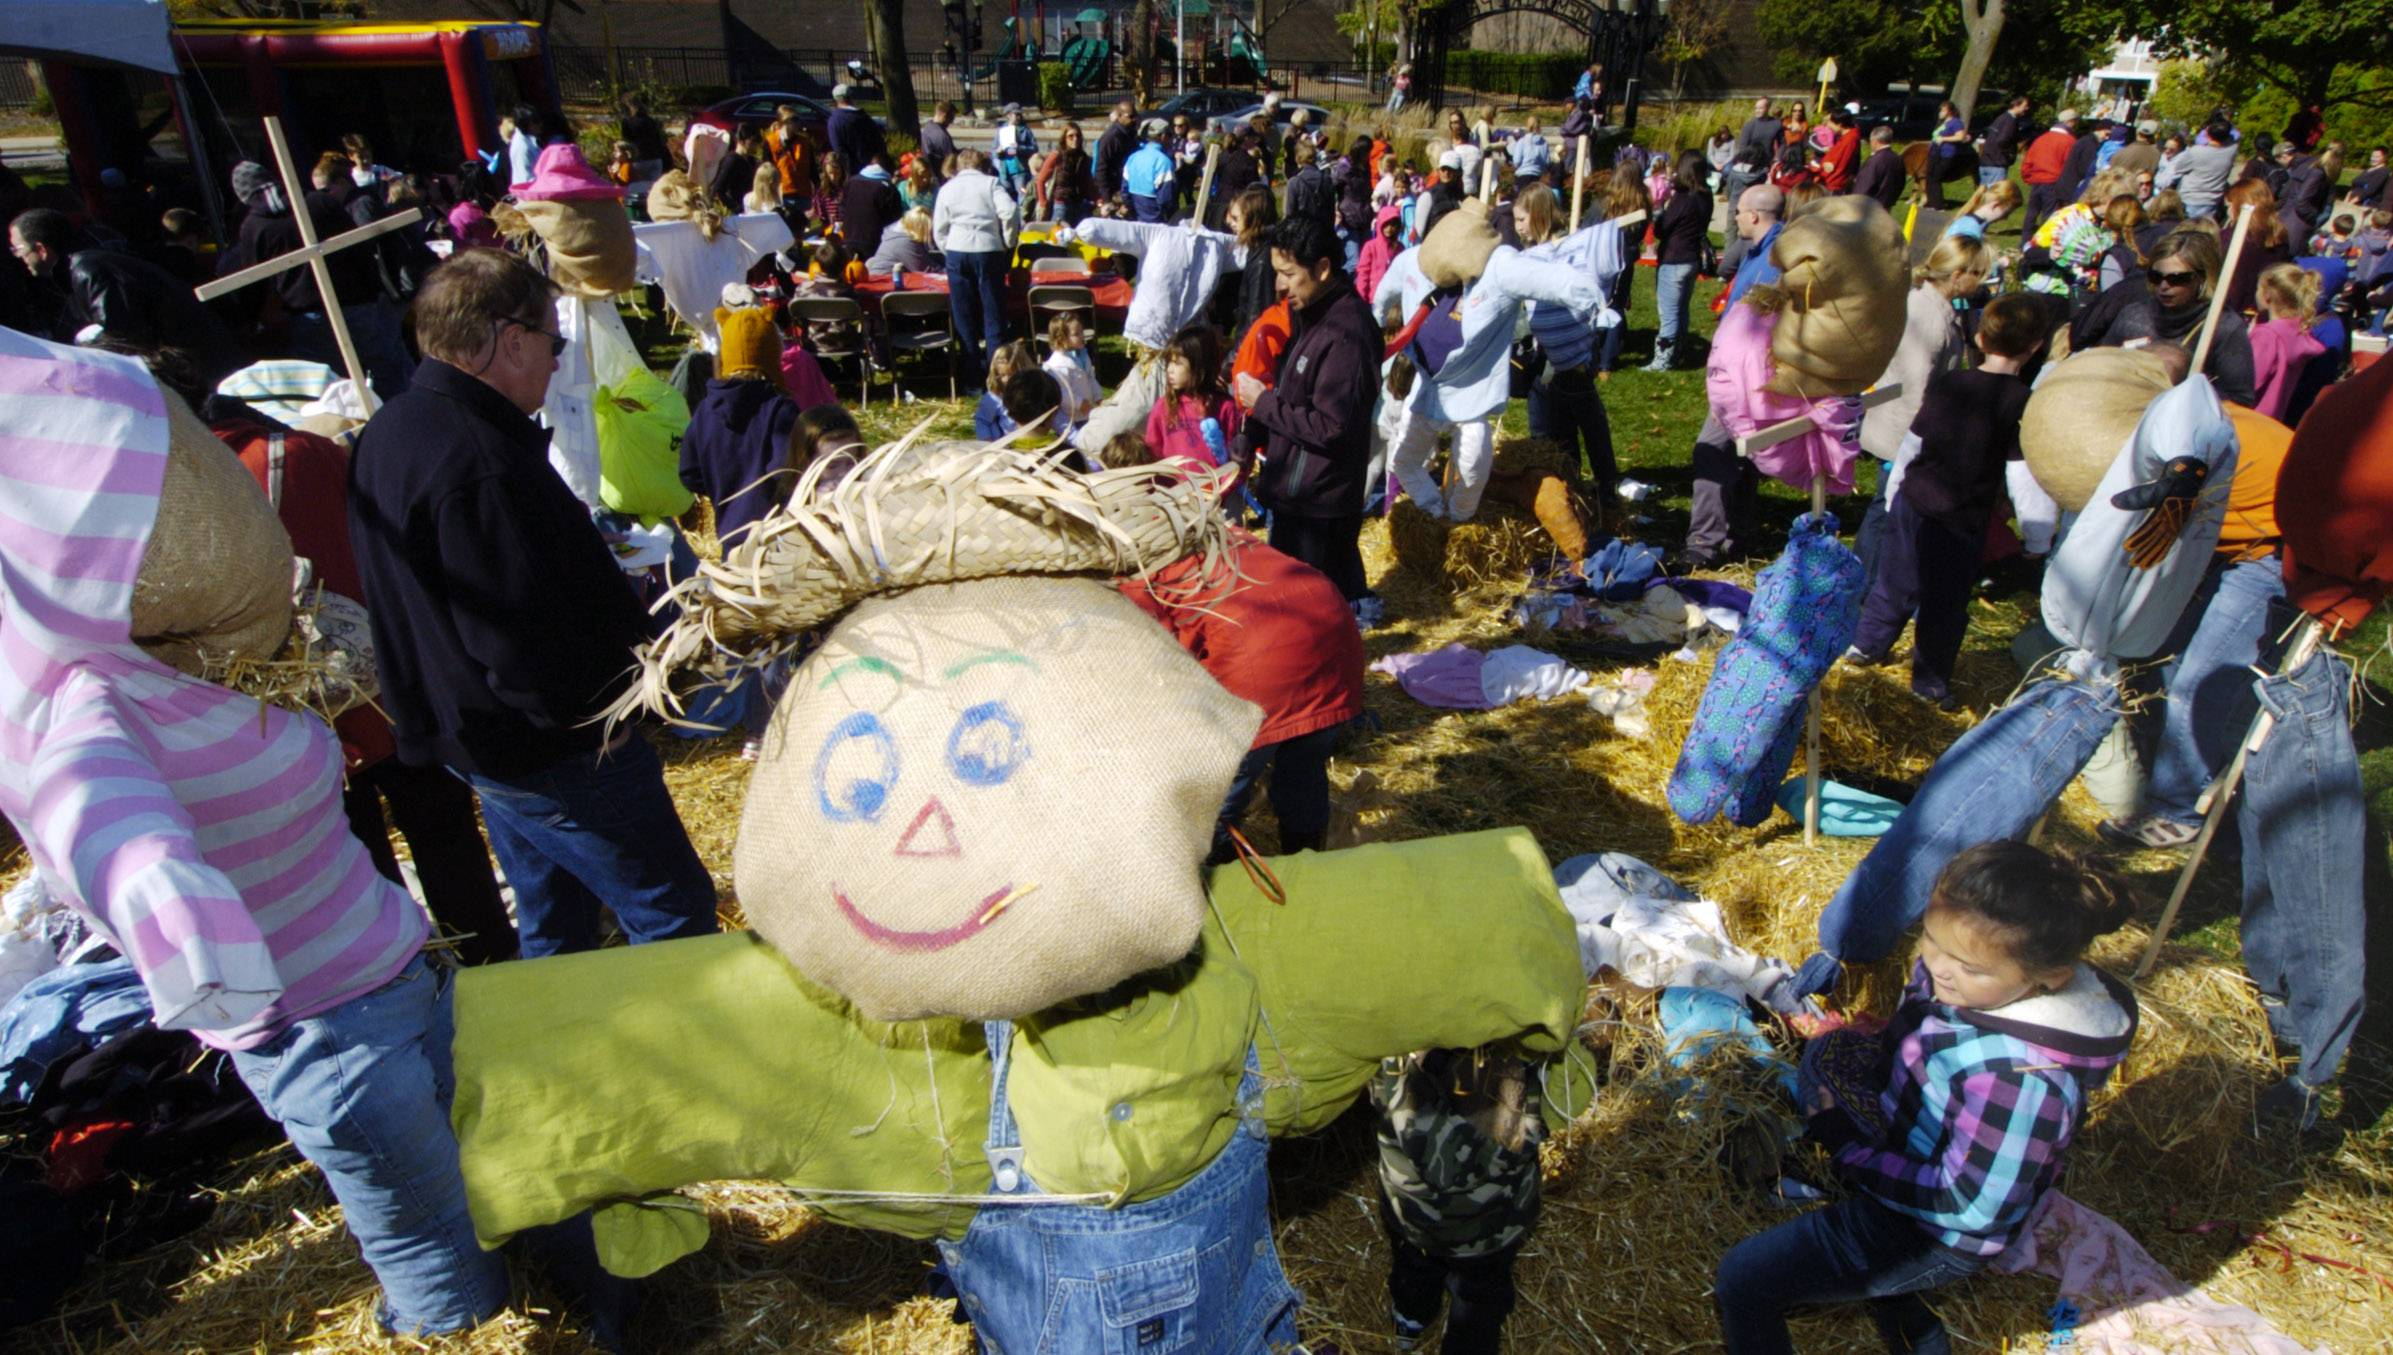 Participants can decorate scarecrows at Barrington's annual Scarecrow Festival.